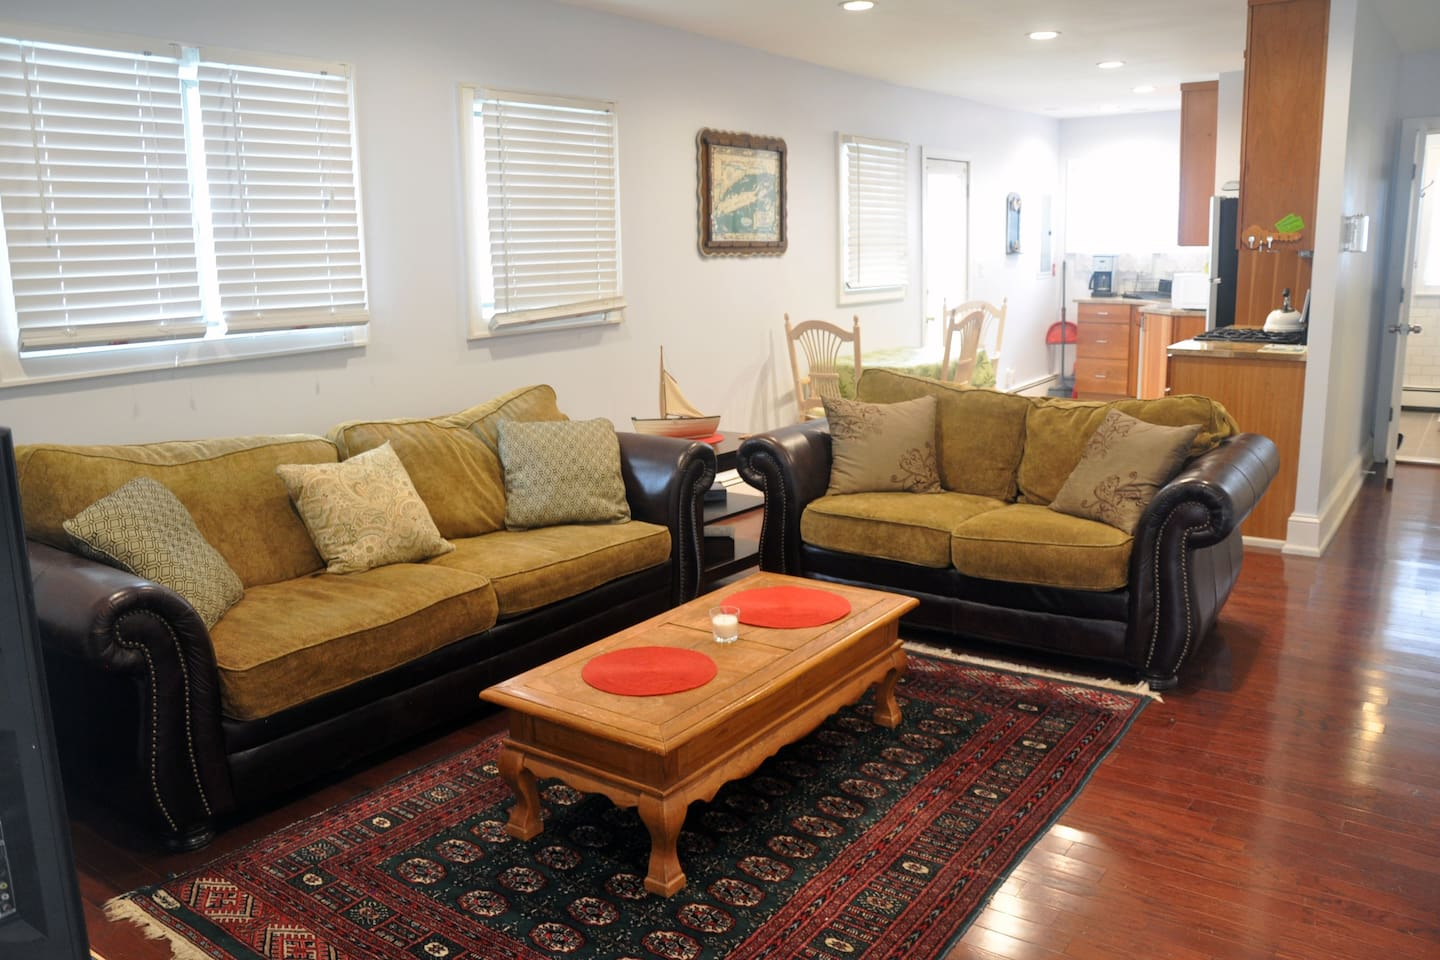 spacious yet cozy living room area w/ couches, tables, tv, lots of space & light